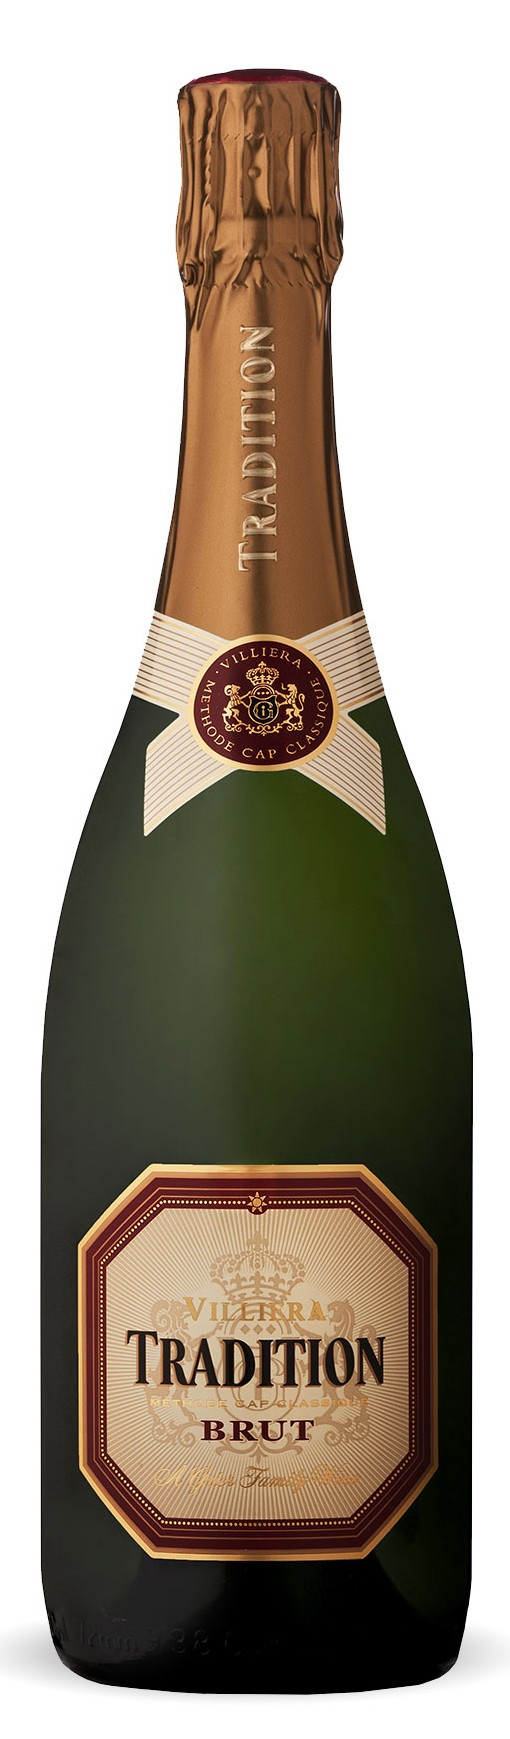 Wine-VILLIERA-TRADITION-BRUT